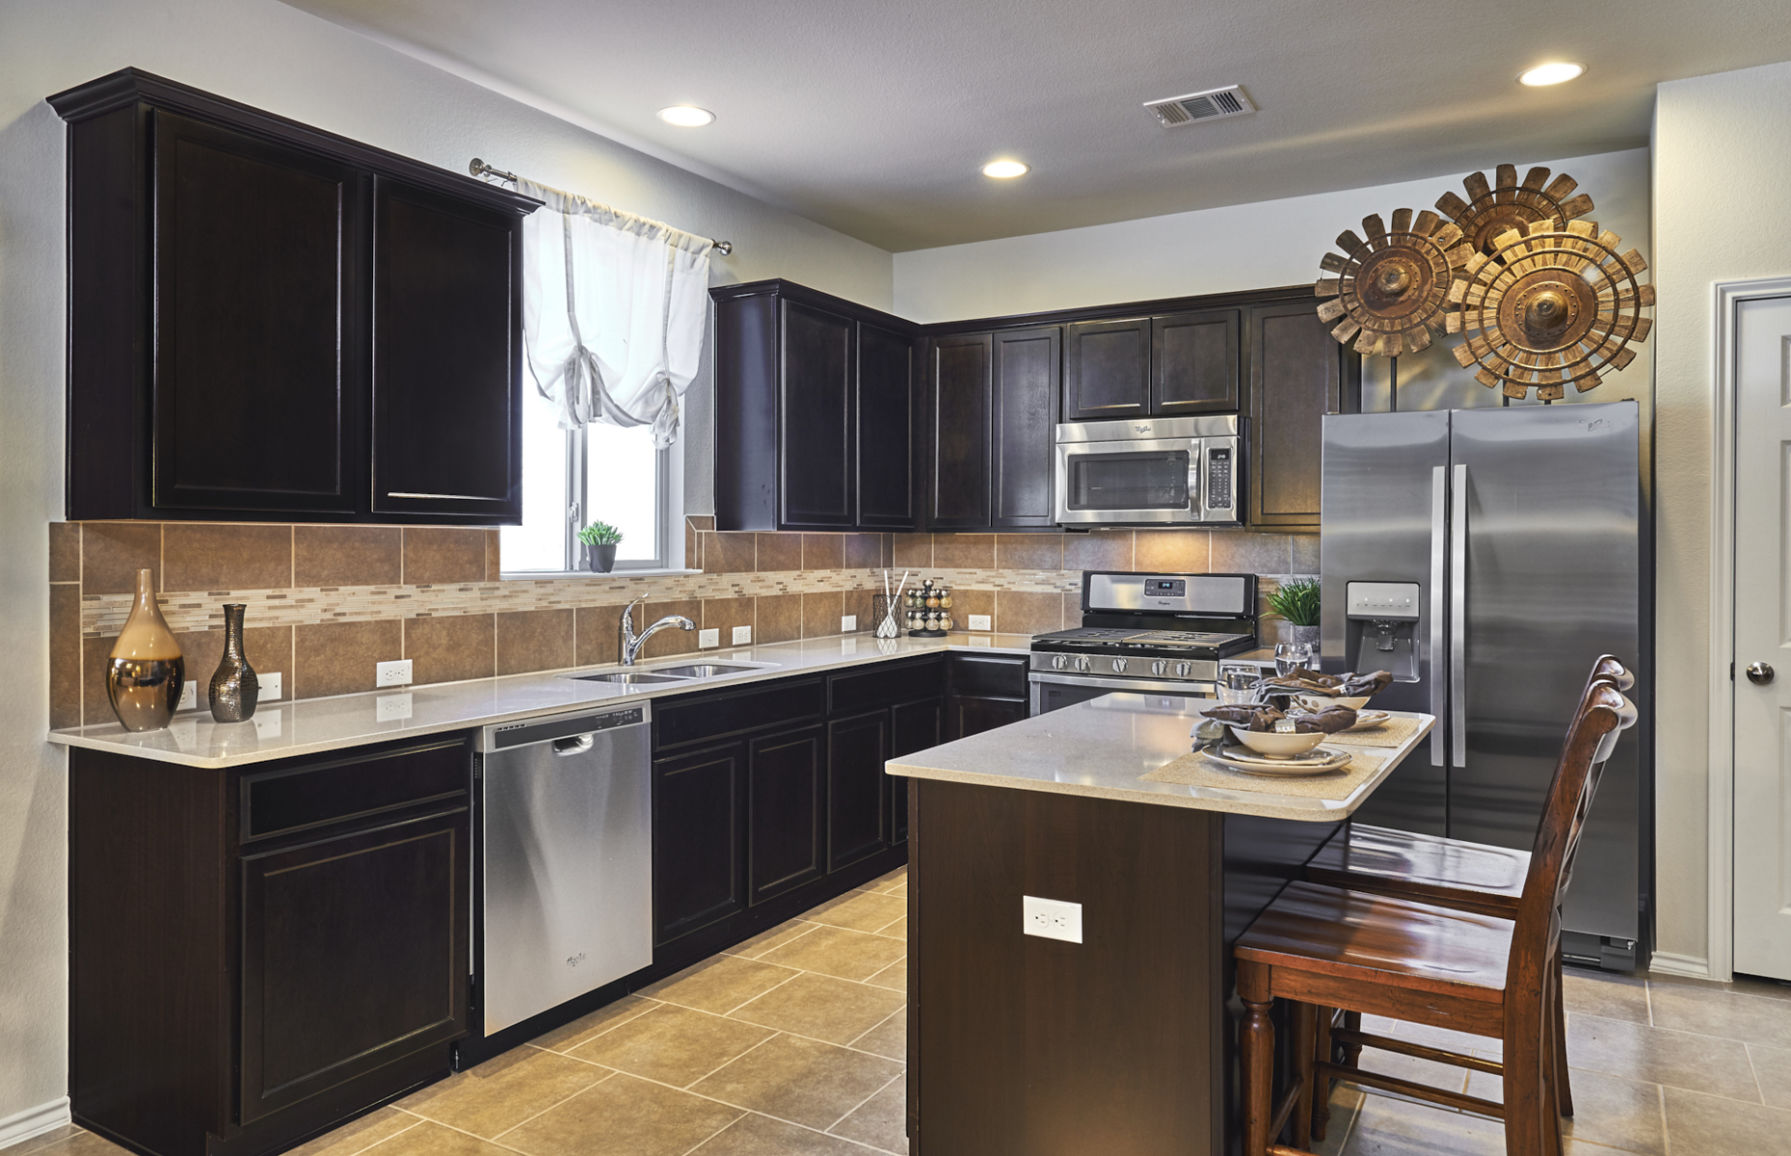 Centex is introducing its Rosemont design at